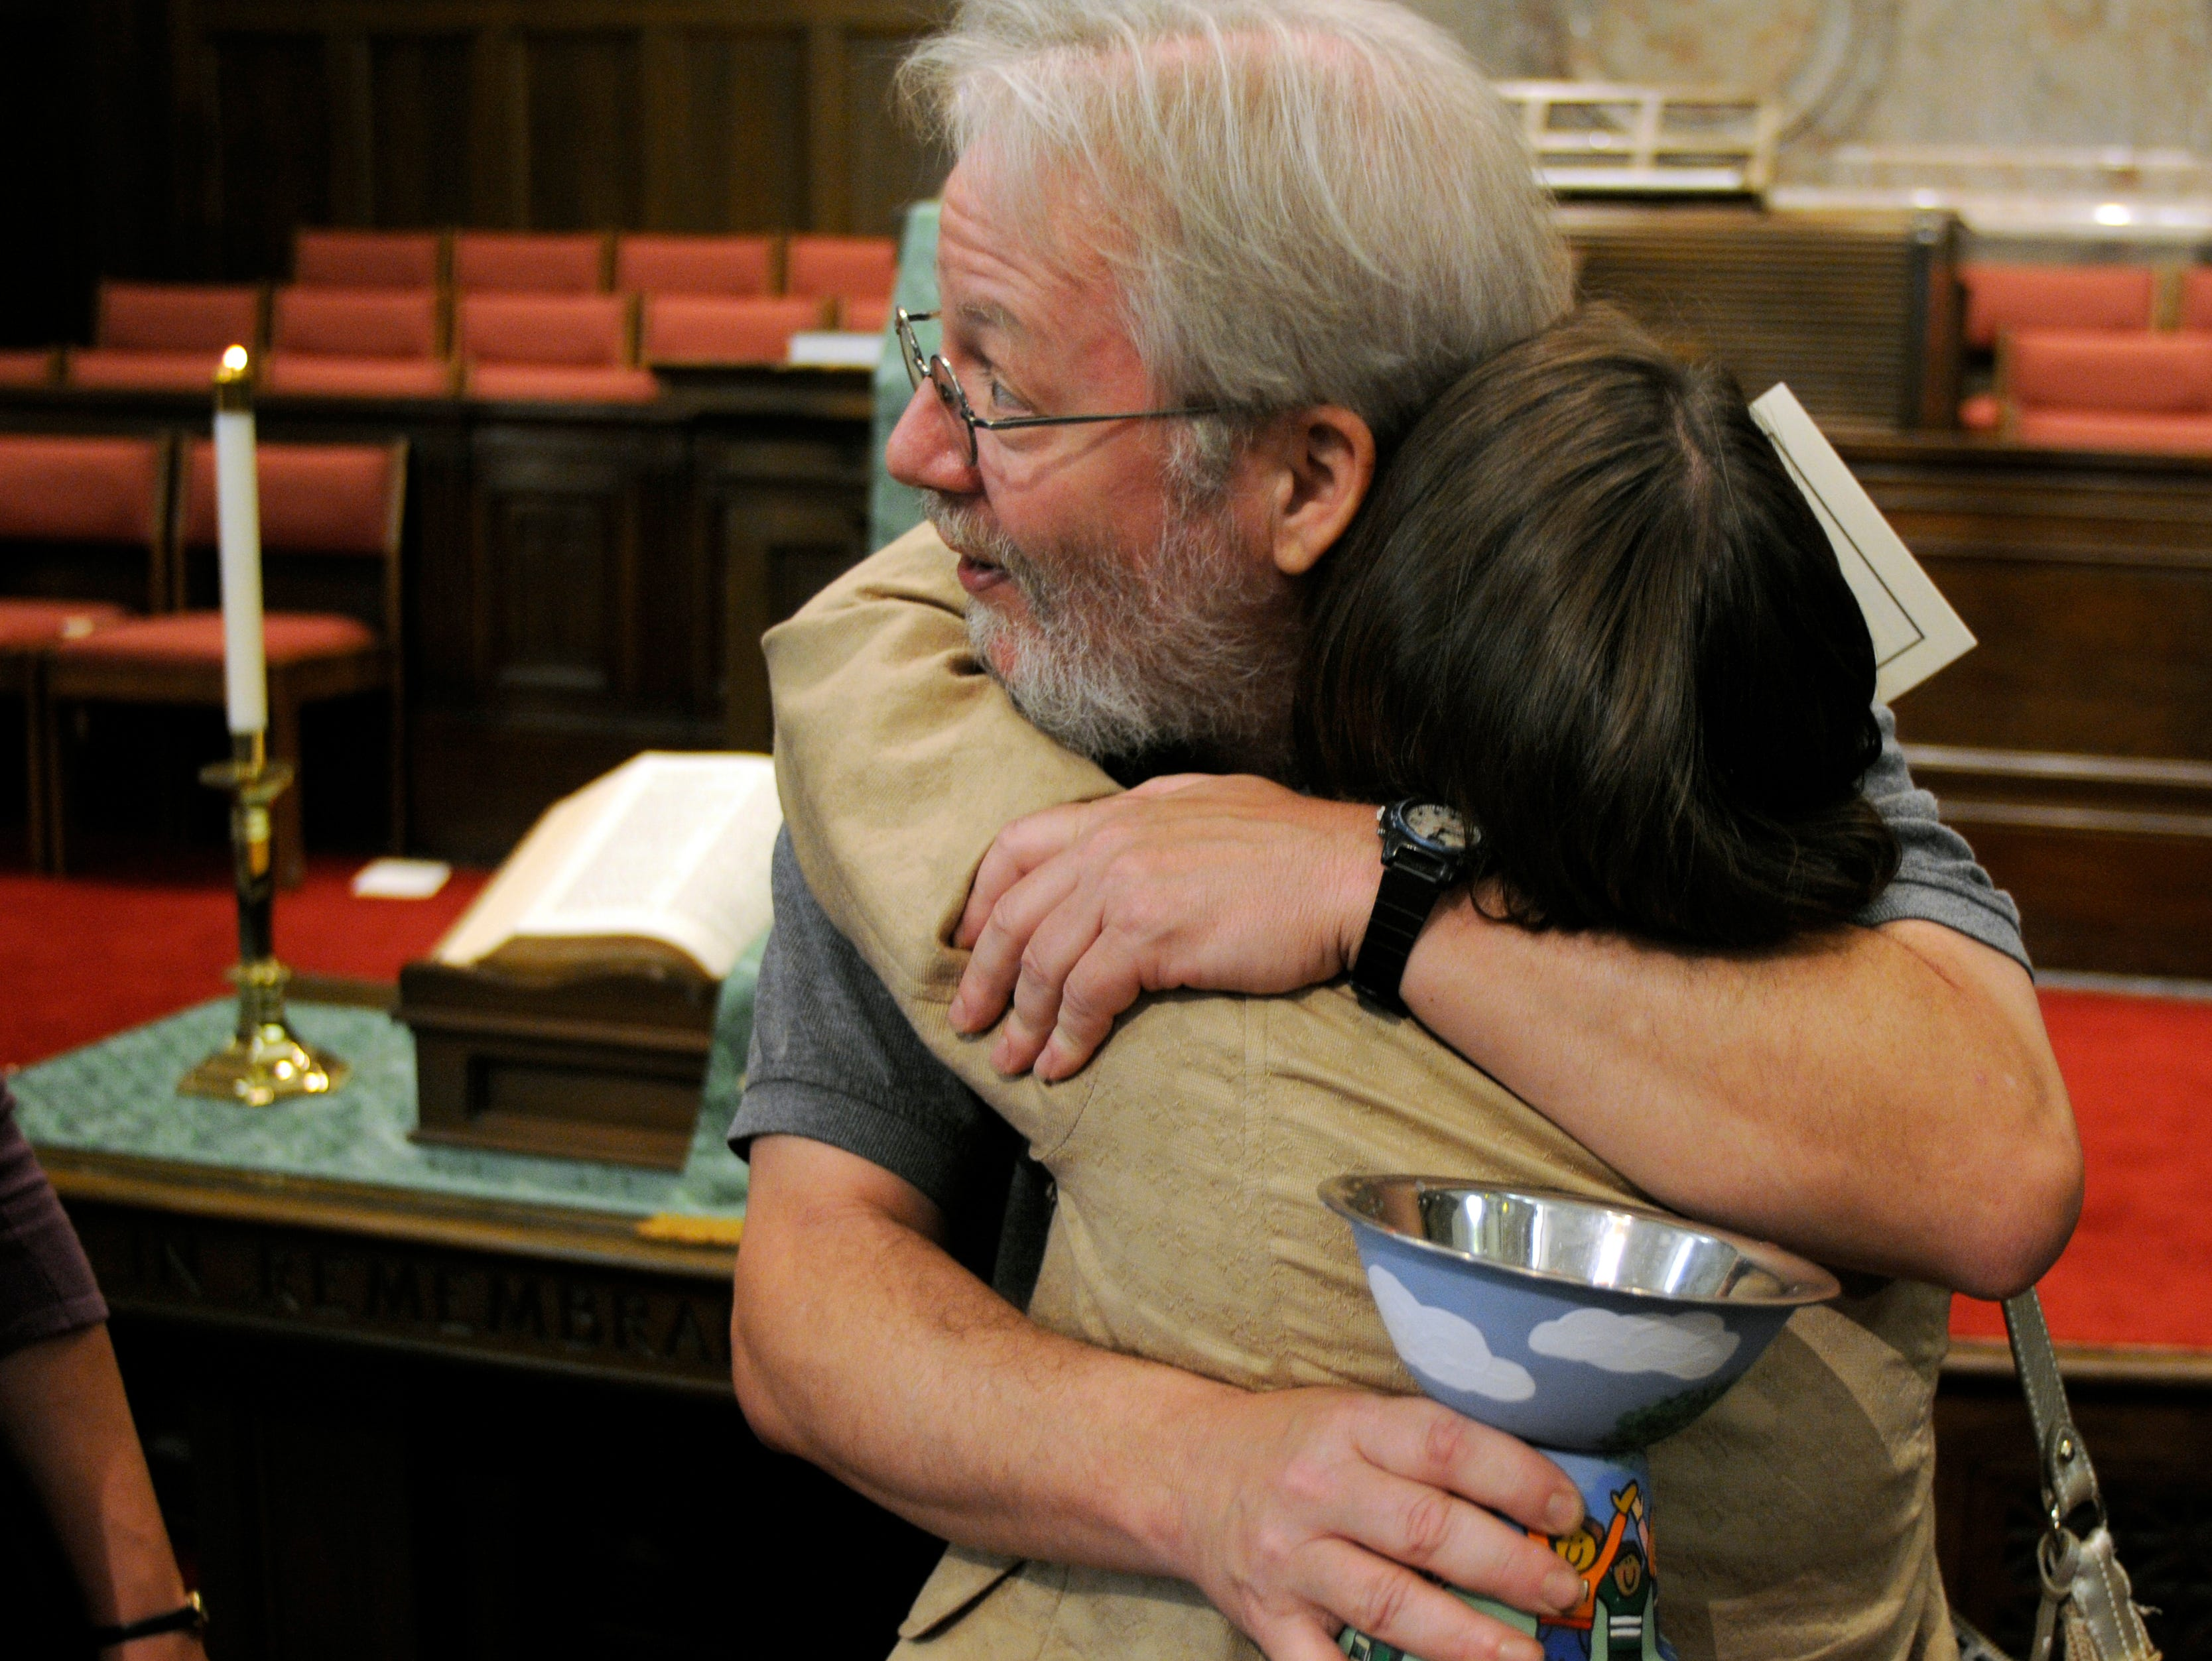 Brian Griffin, director of religious education at Tennessee Valley Unitarian Universalist Church, hugs one of the people who attended a Service of Worship and Hope held at noon Tuesday at First Baptist Church downtown. Griffin is holding a chalice and a candle which he lit for the children during the service.